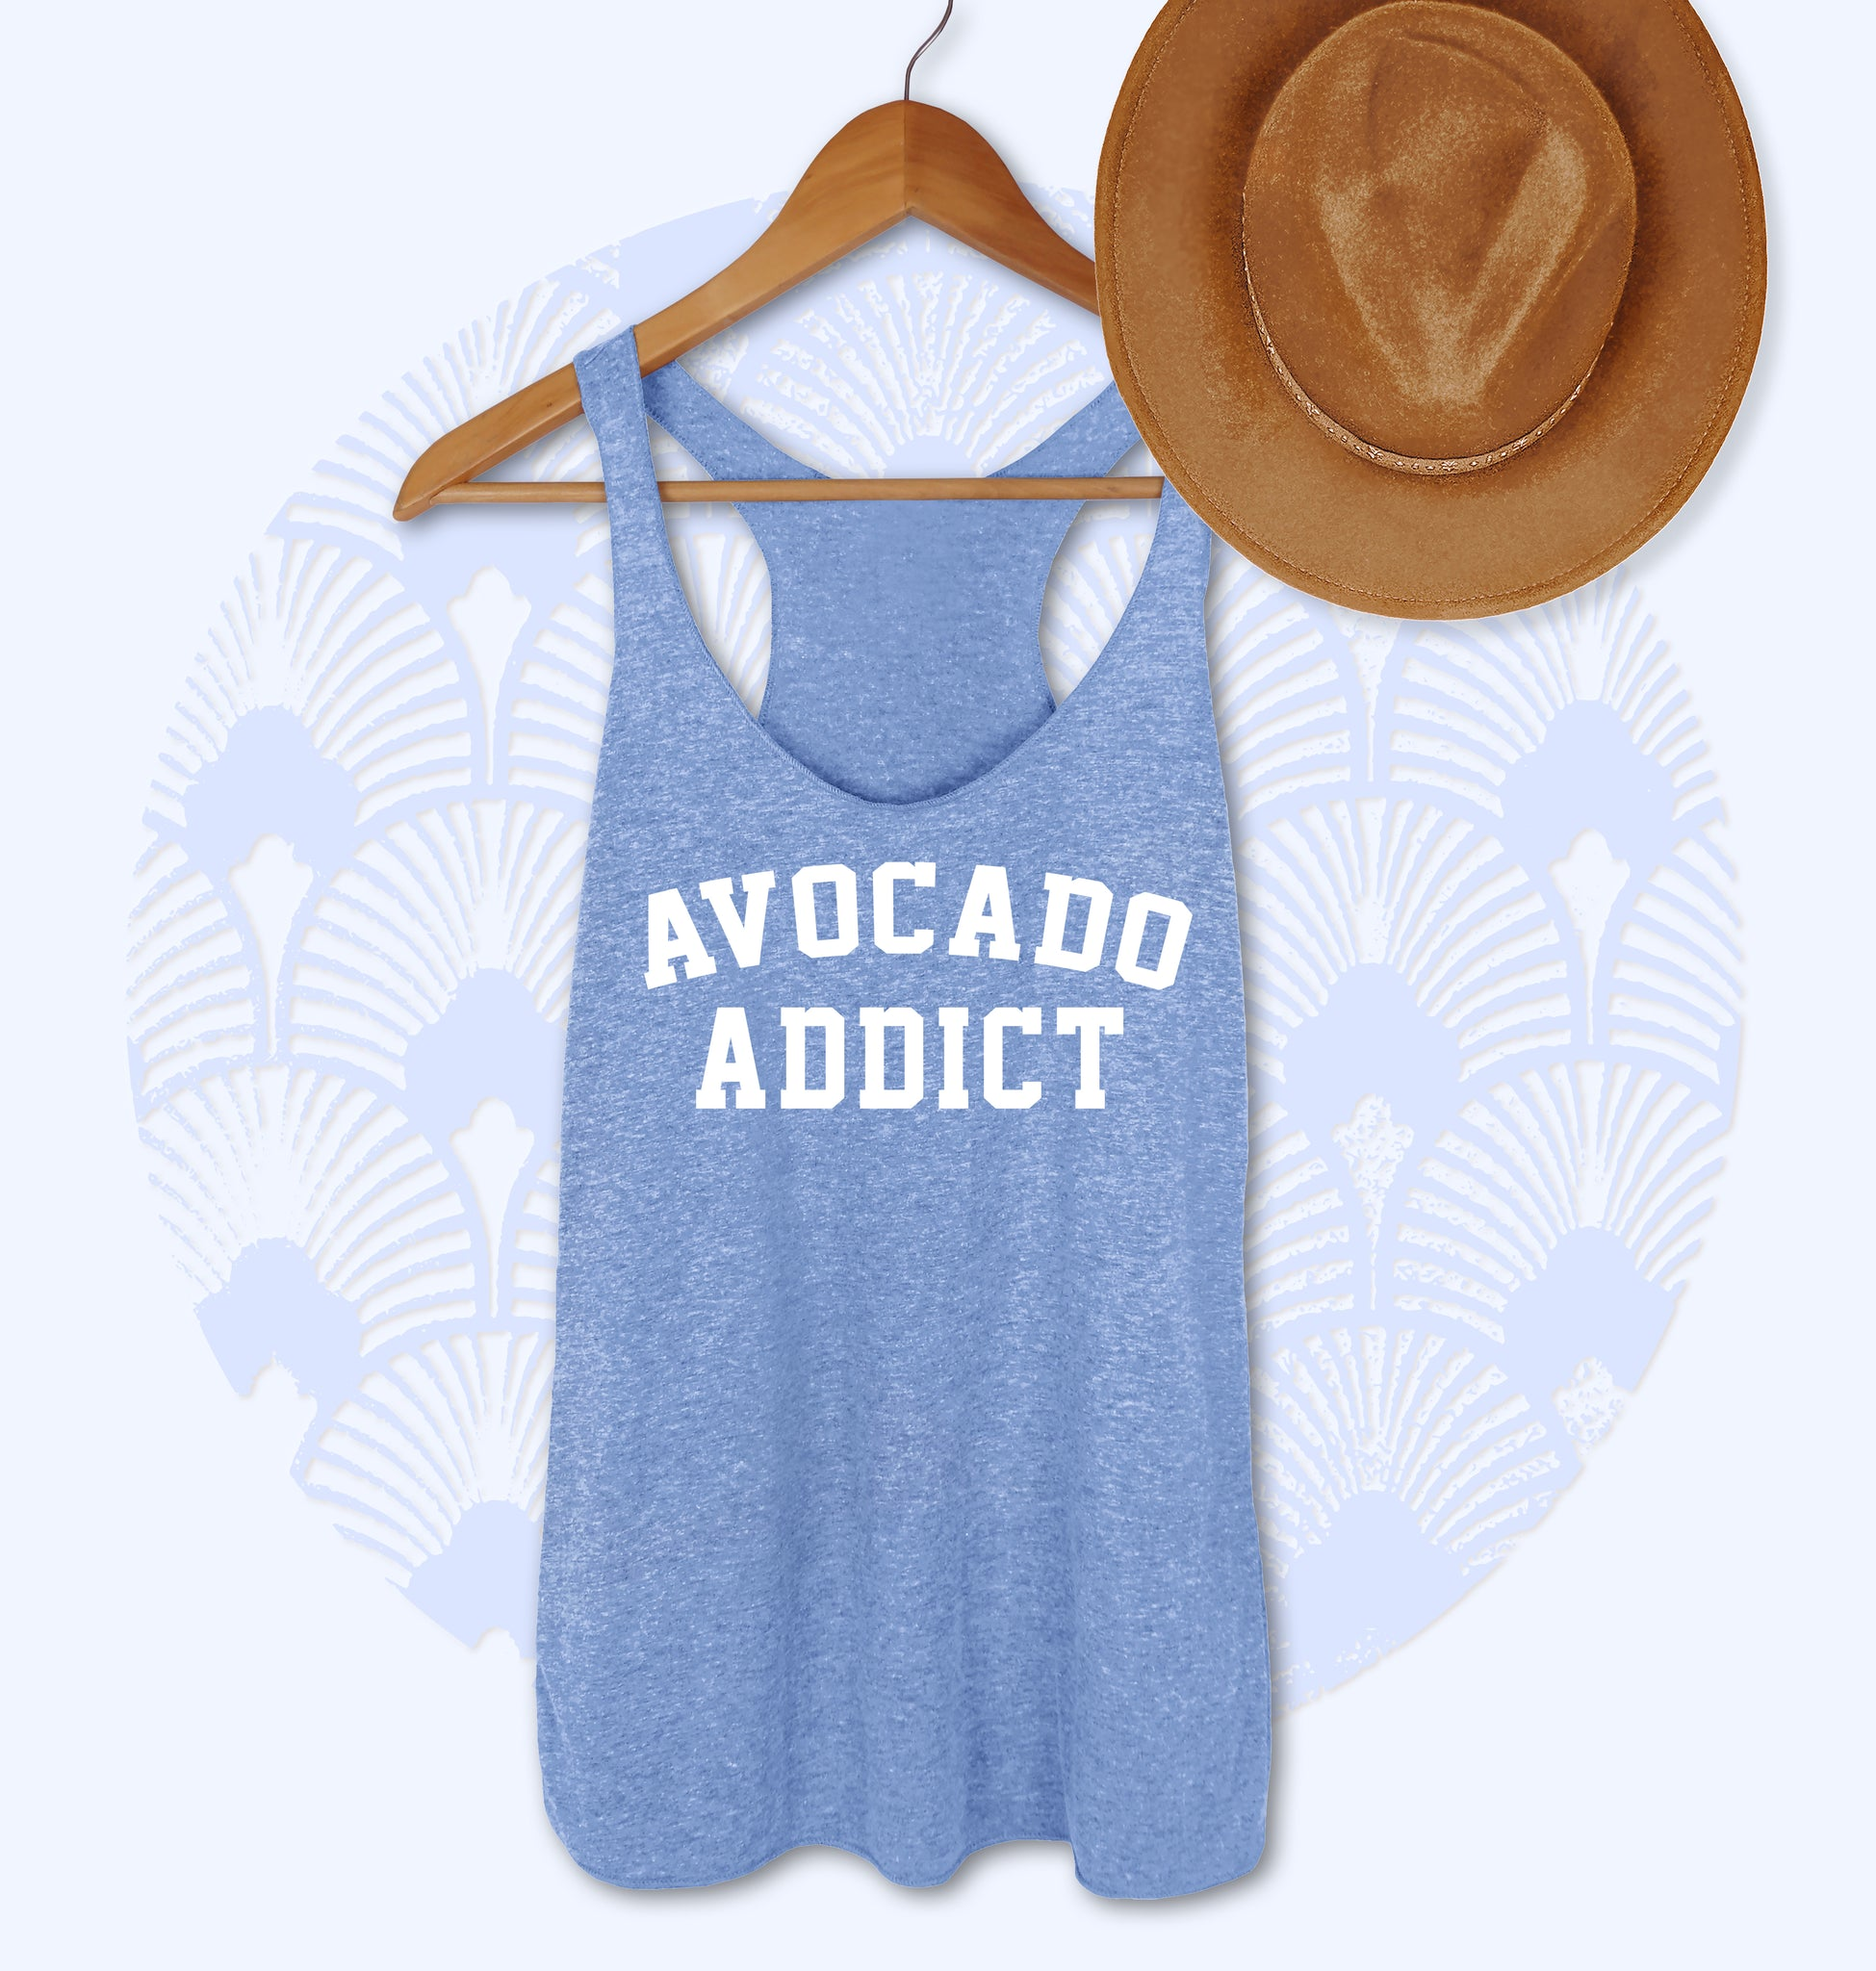 Avocado Addict Tank